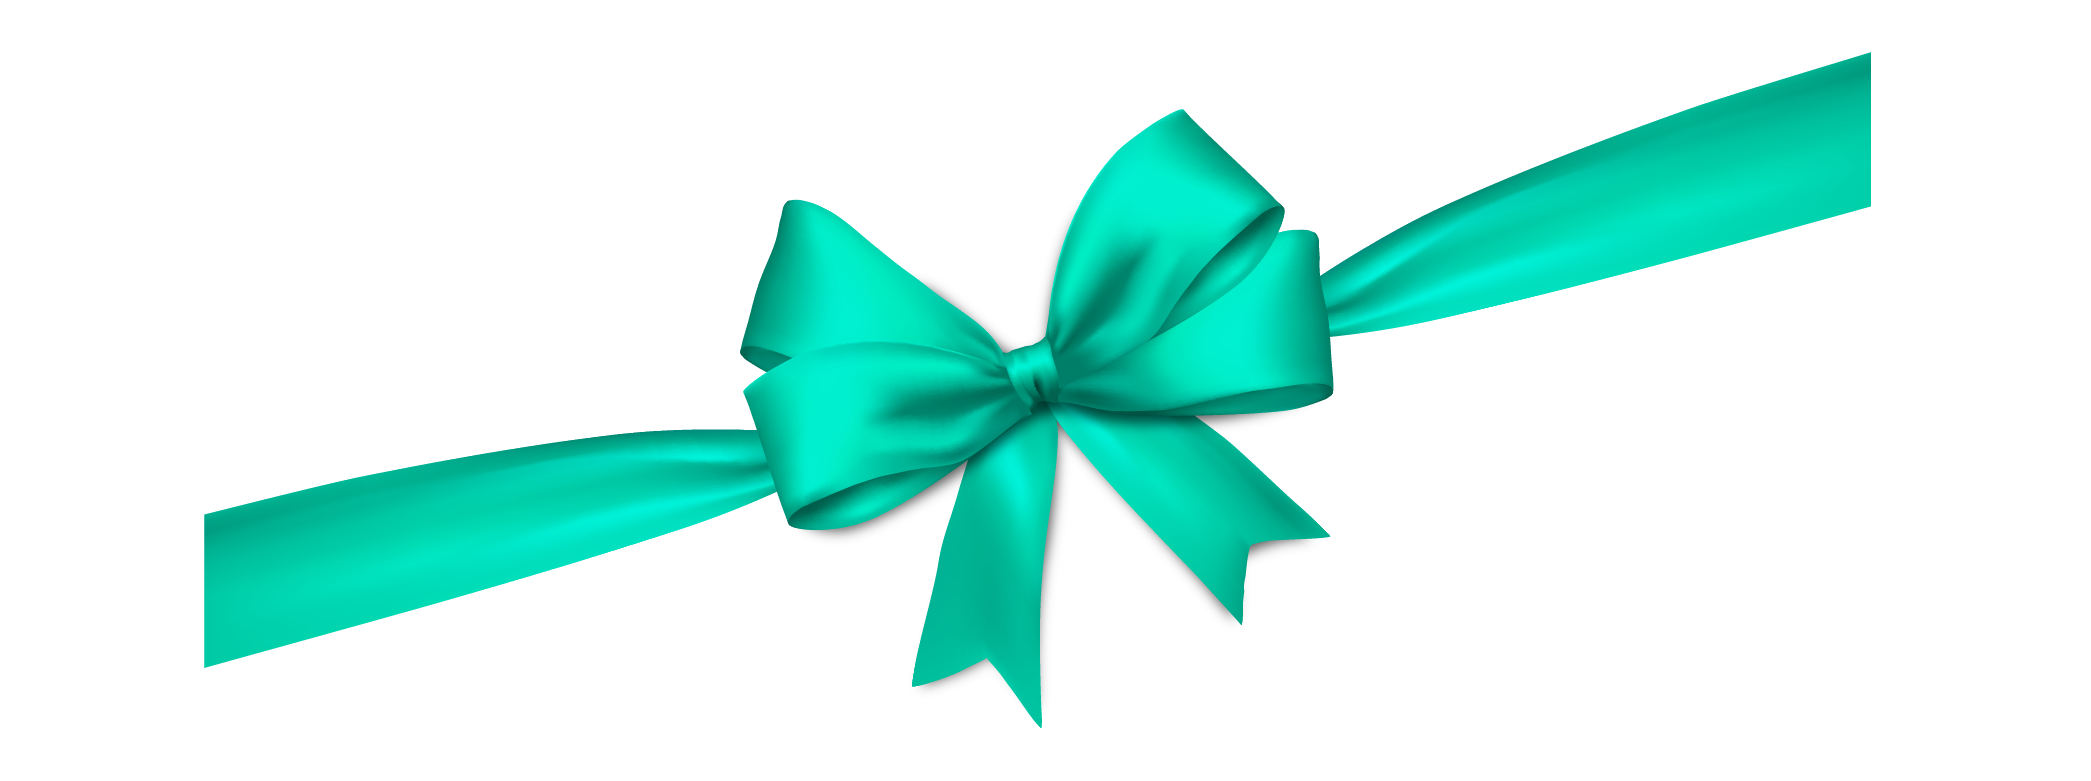 2091x781 Gift Wrap Bow Tie Diy Bow Tie Gift Wrap Bow X Free Images